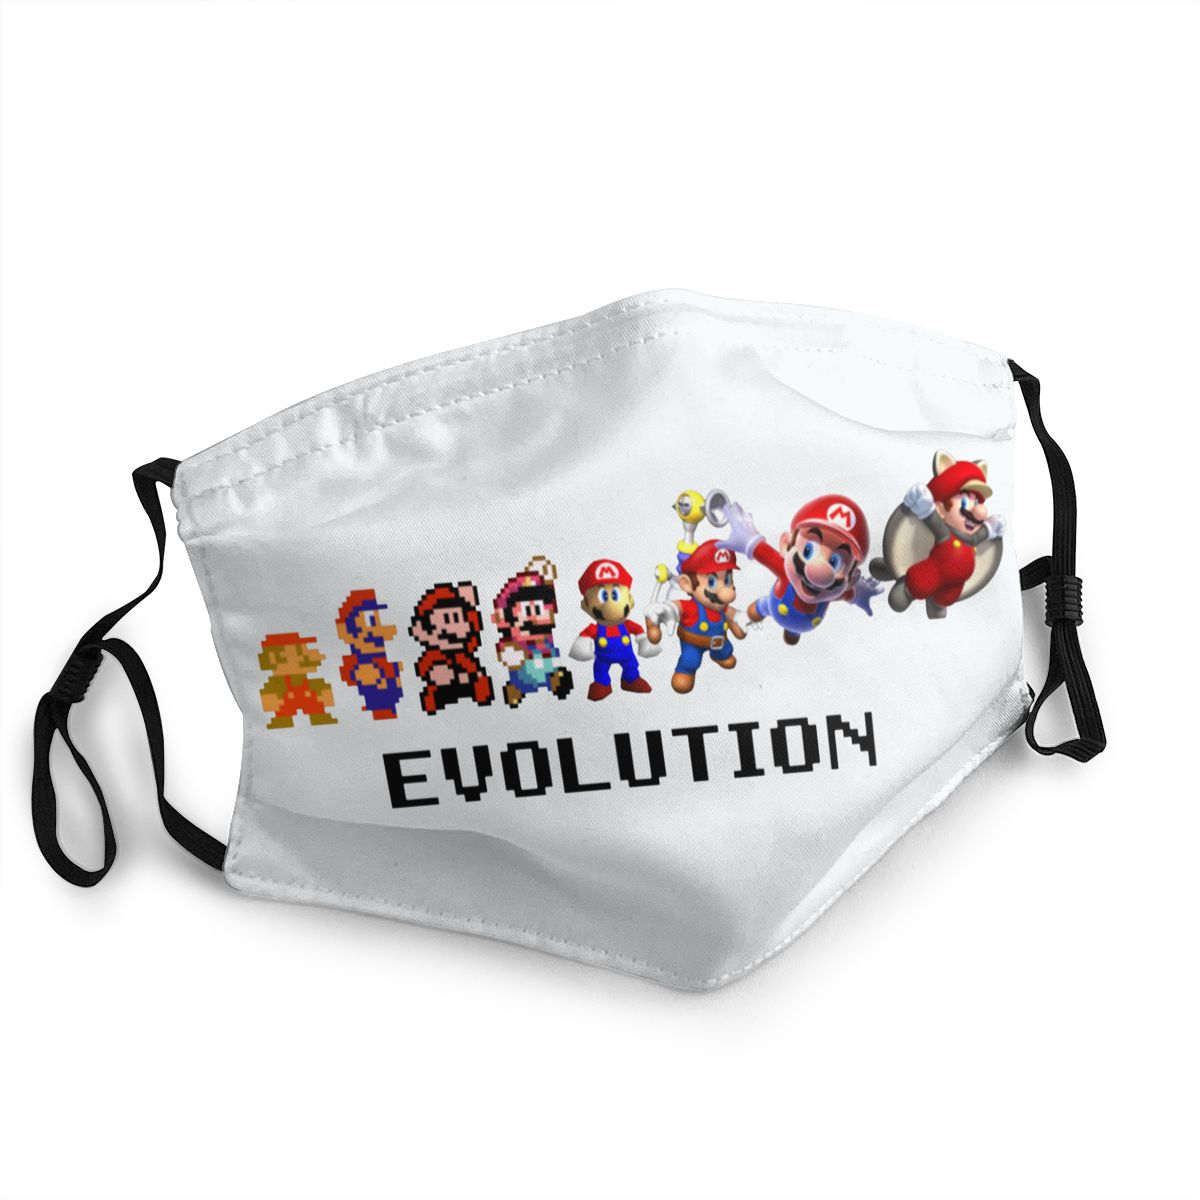 Super Mario Evolution Adult Non-Disposable Face Mask Anti Bacterial Dust Mask Protection Mask Respirator Mouth Muffle